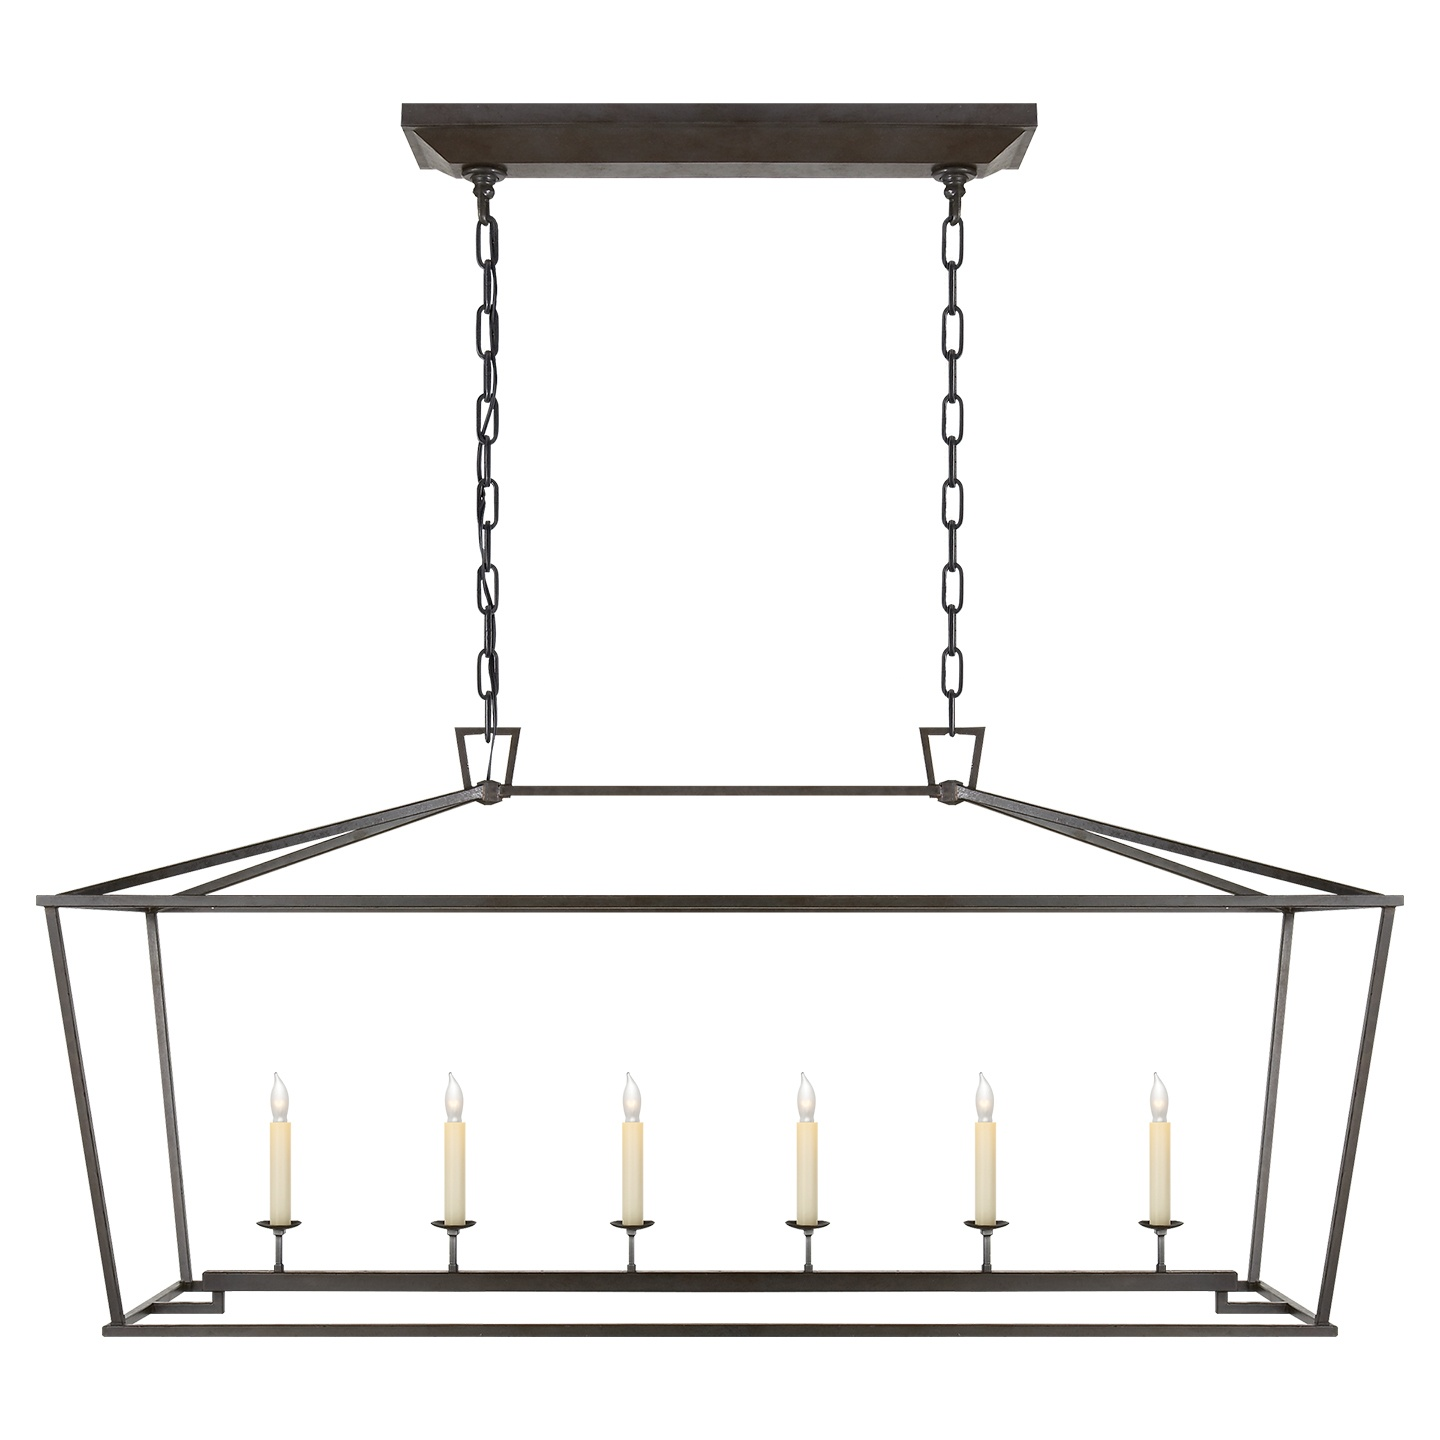 Visual Comfort Darlana Large Linear Pendant in Aged Iron.